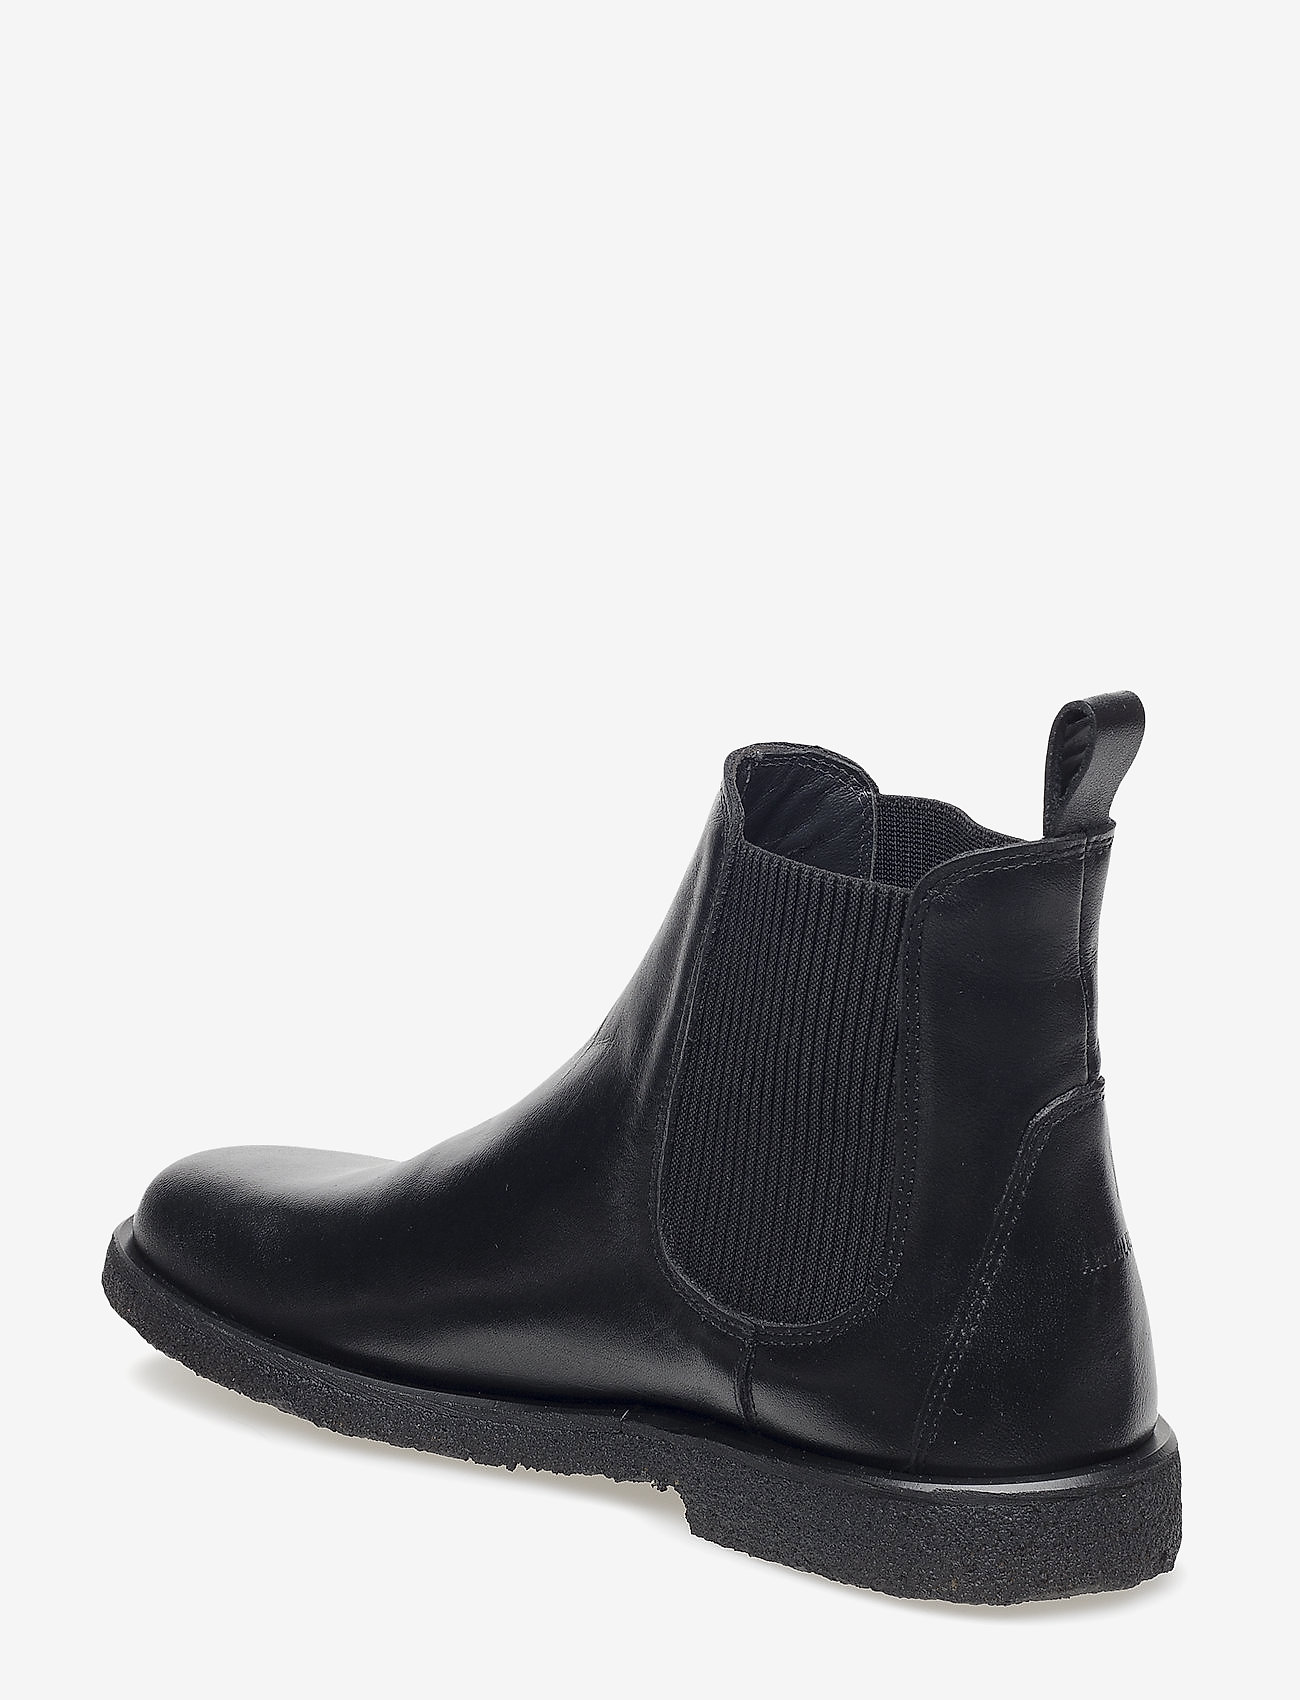 ANGULUS - Booties-flat - with elastic - chelsea boots - 1604/019 black/black - 1